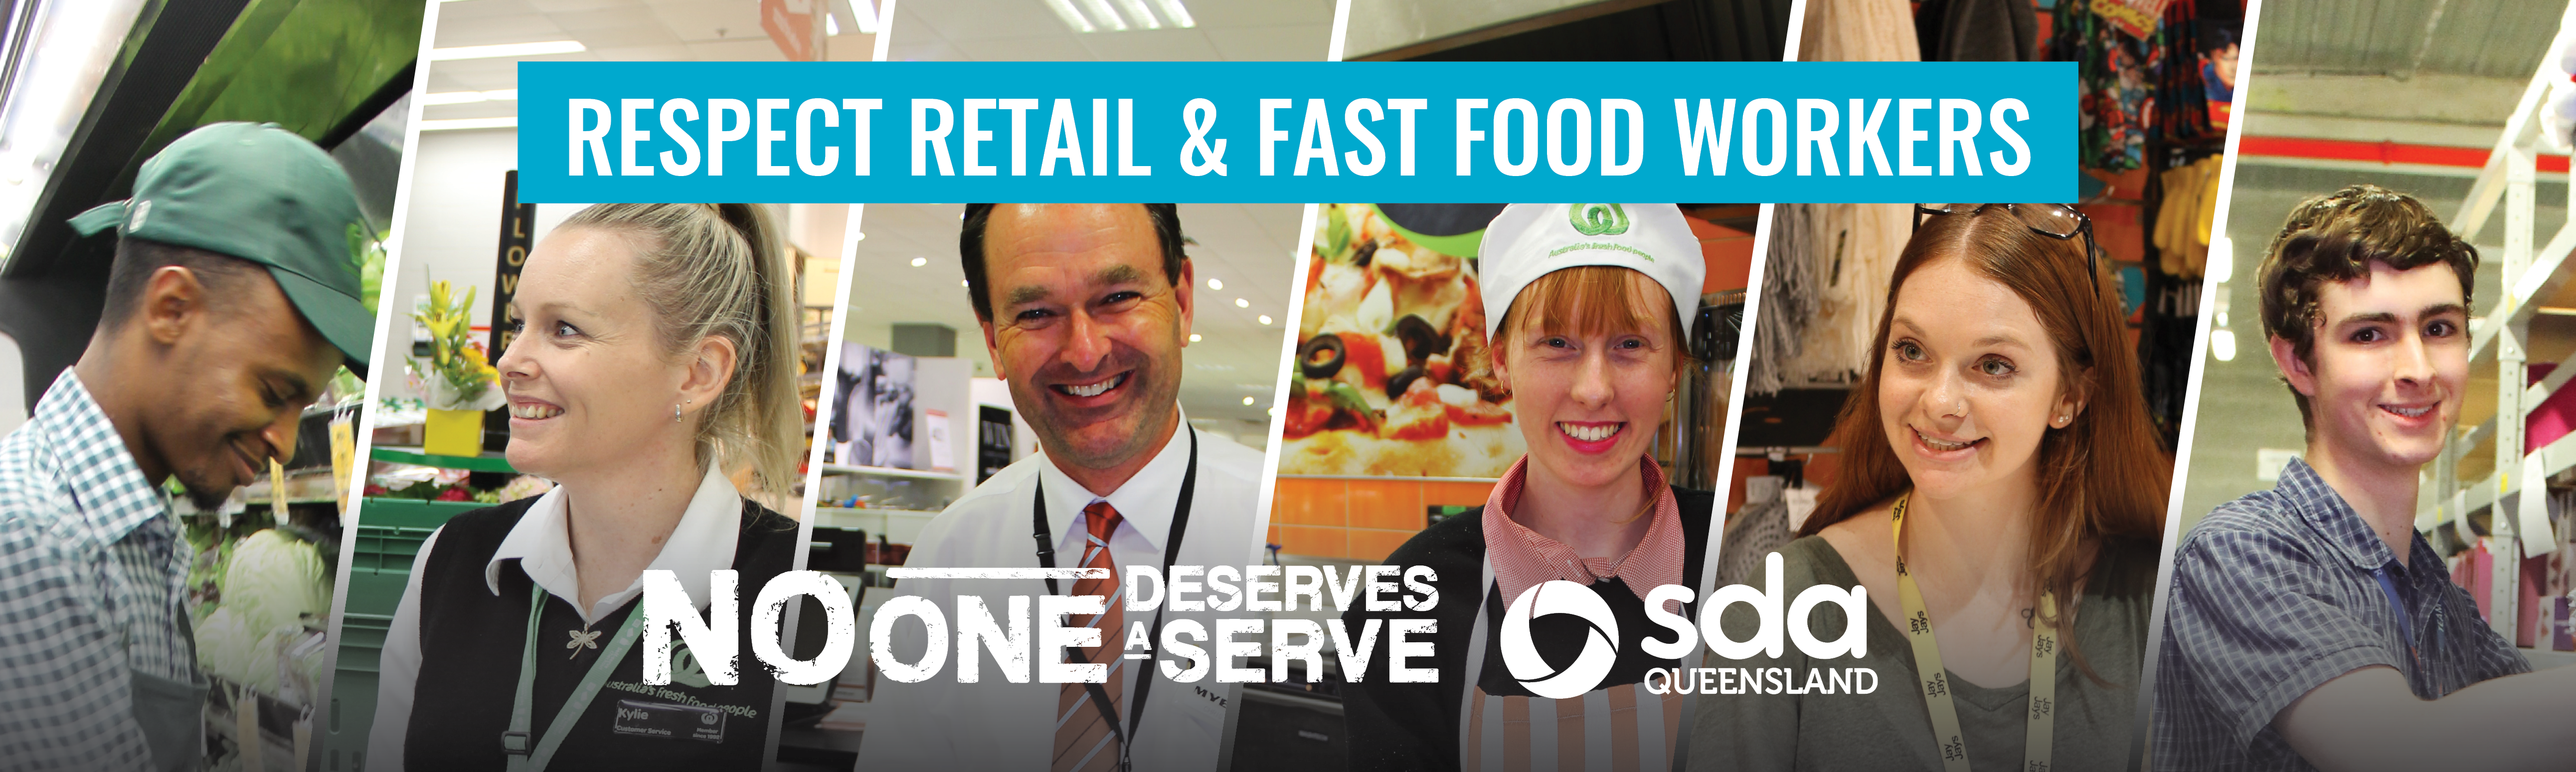 No One Deserves A serve - Respect Retail and Fast Food Workers